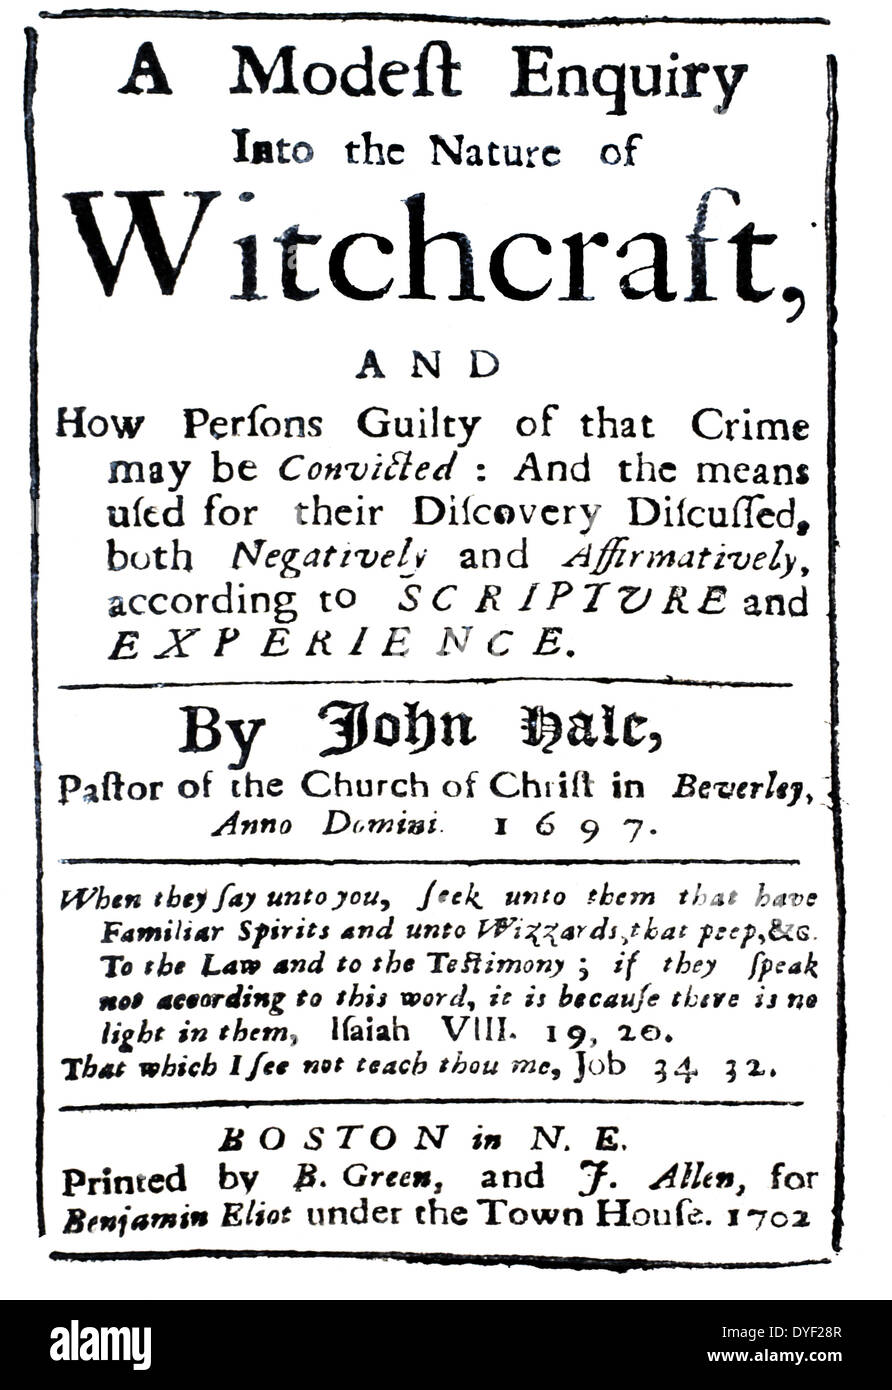 A Modest Enquiry Into the Nature of Witchcraft, by Rev. John Hale of Beverly. The book was written in 1697, - Stock Image